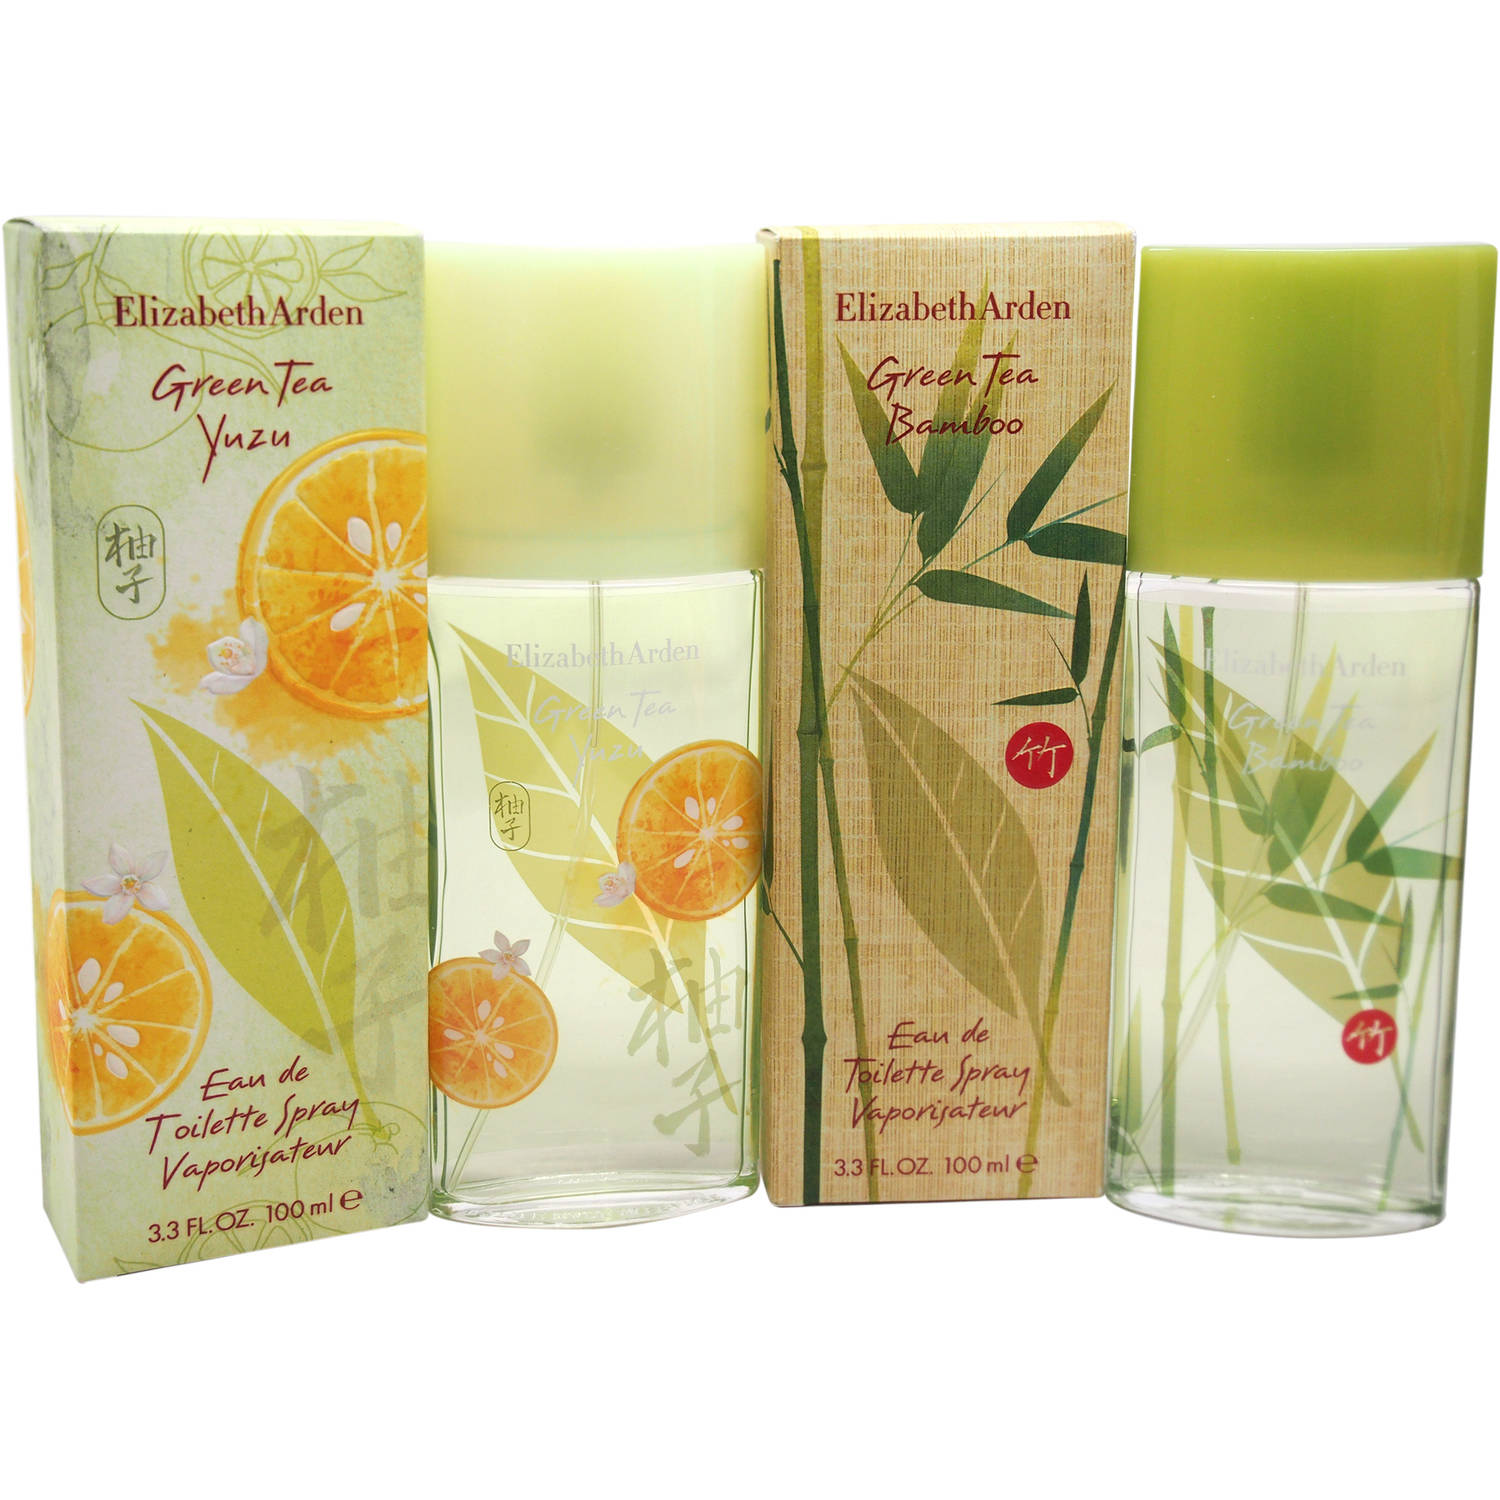 Elizabeth Arden Green Tea Collection Gift Set, 2 pc